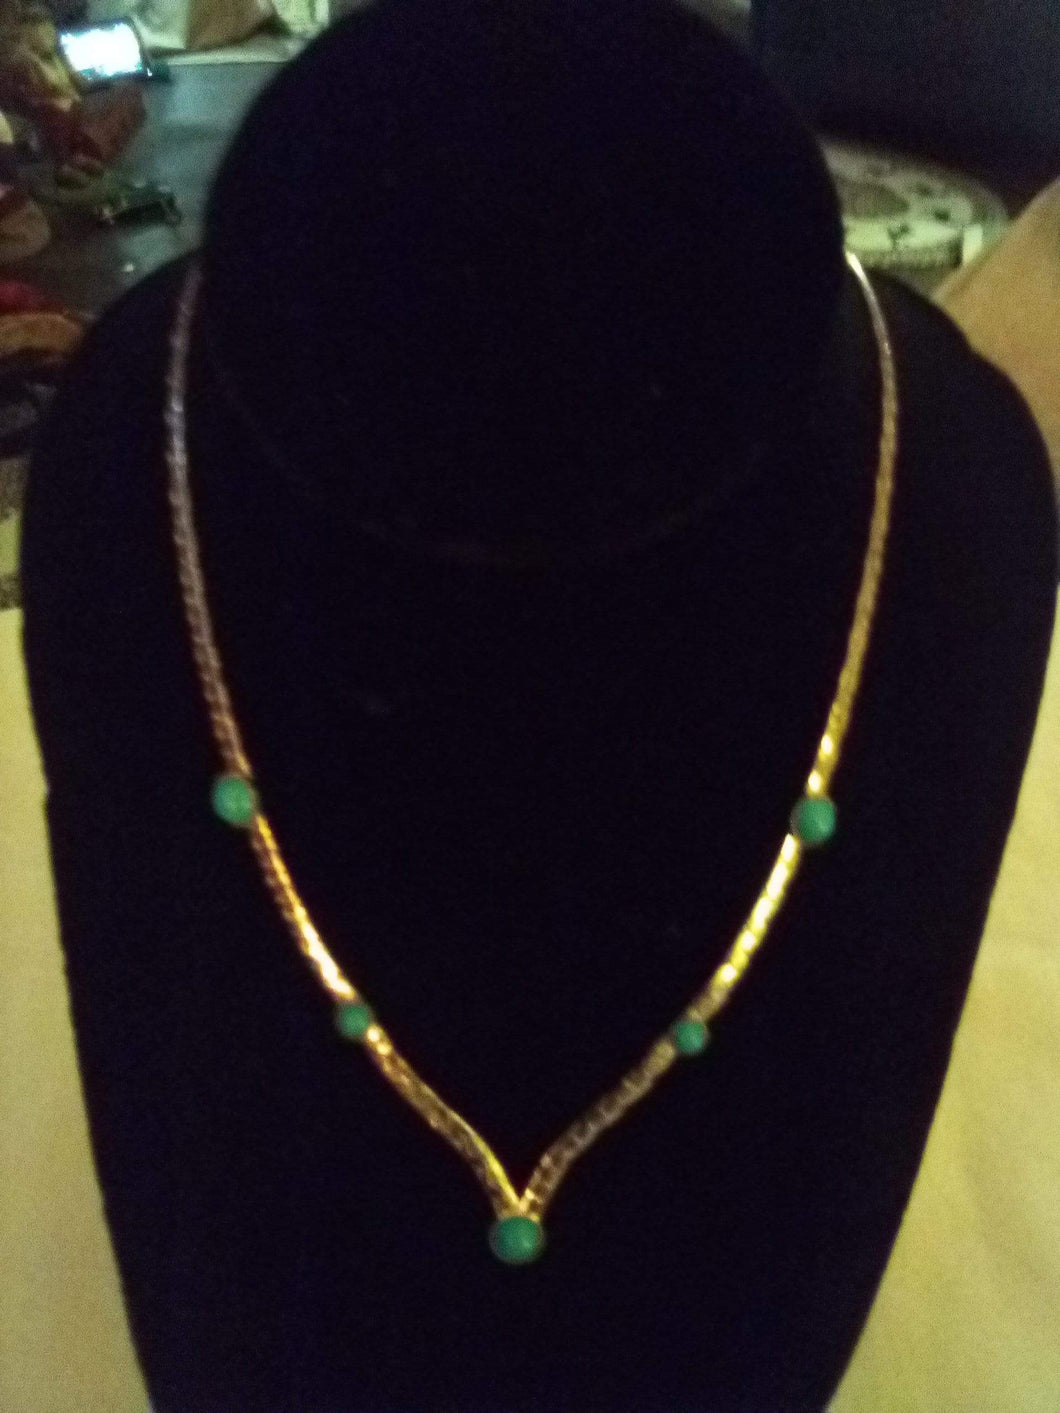 Sarah Coventry marked Cute silver tone necklace with tiny turquoise like design - B&P'sringsnthings